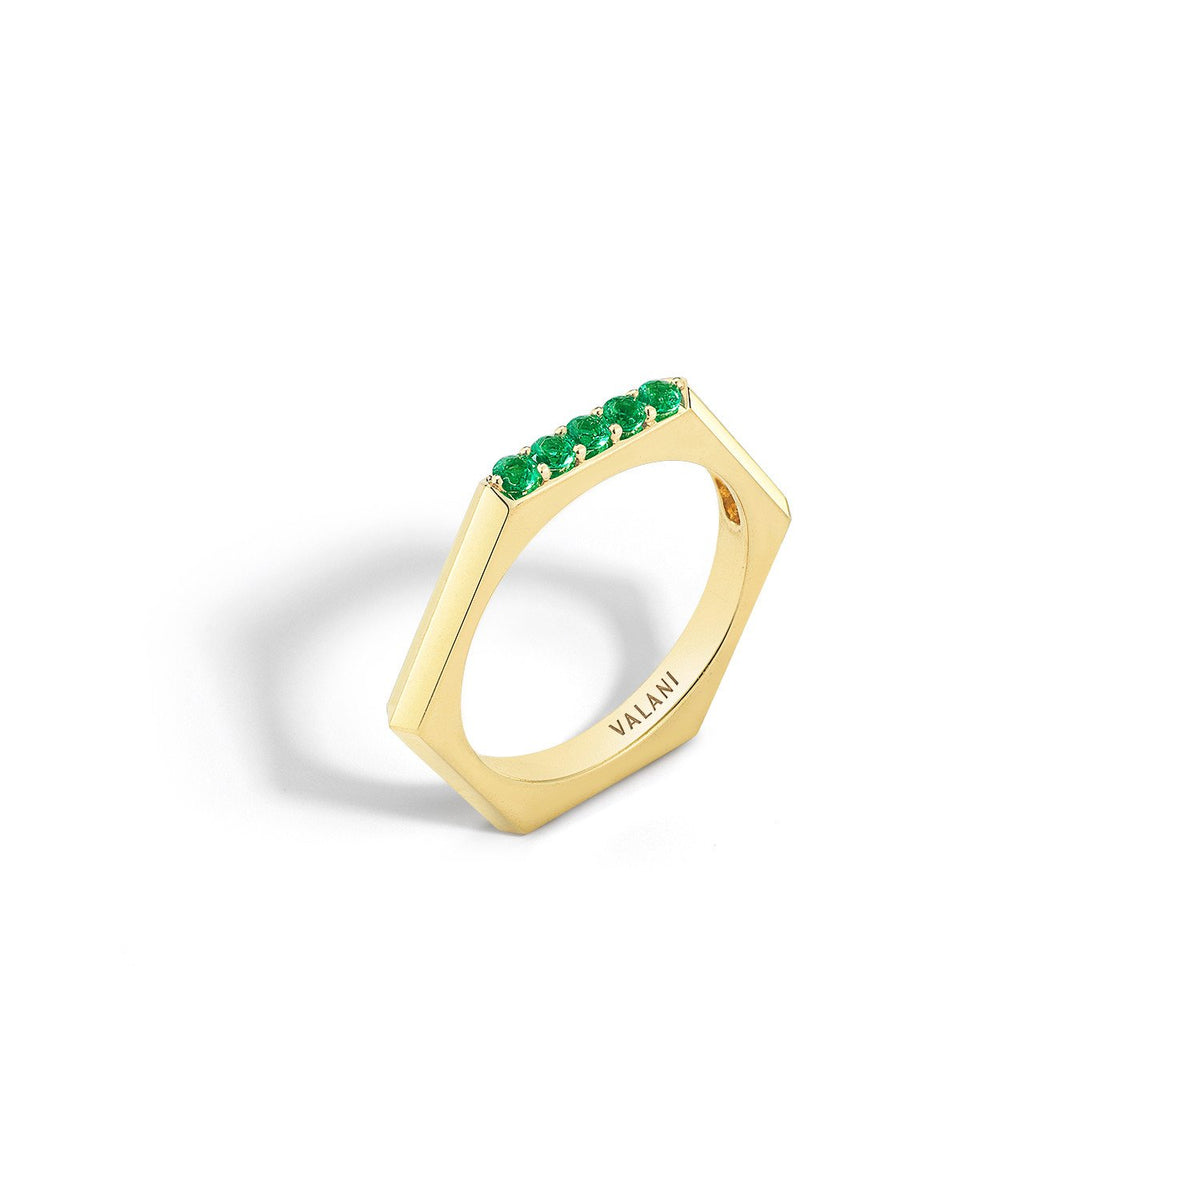 Valani 18K Yellow Gold Hexa V Emerald Ring